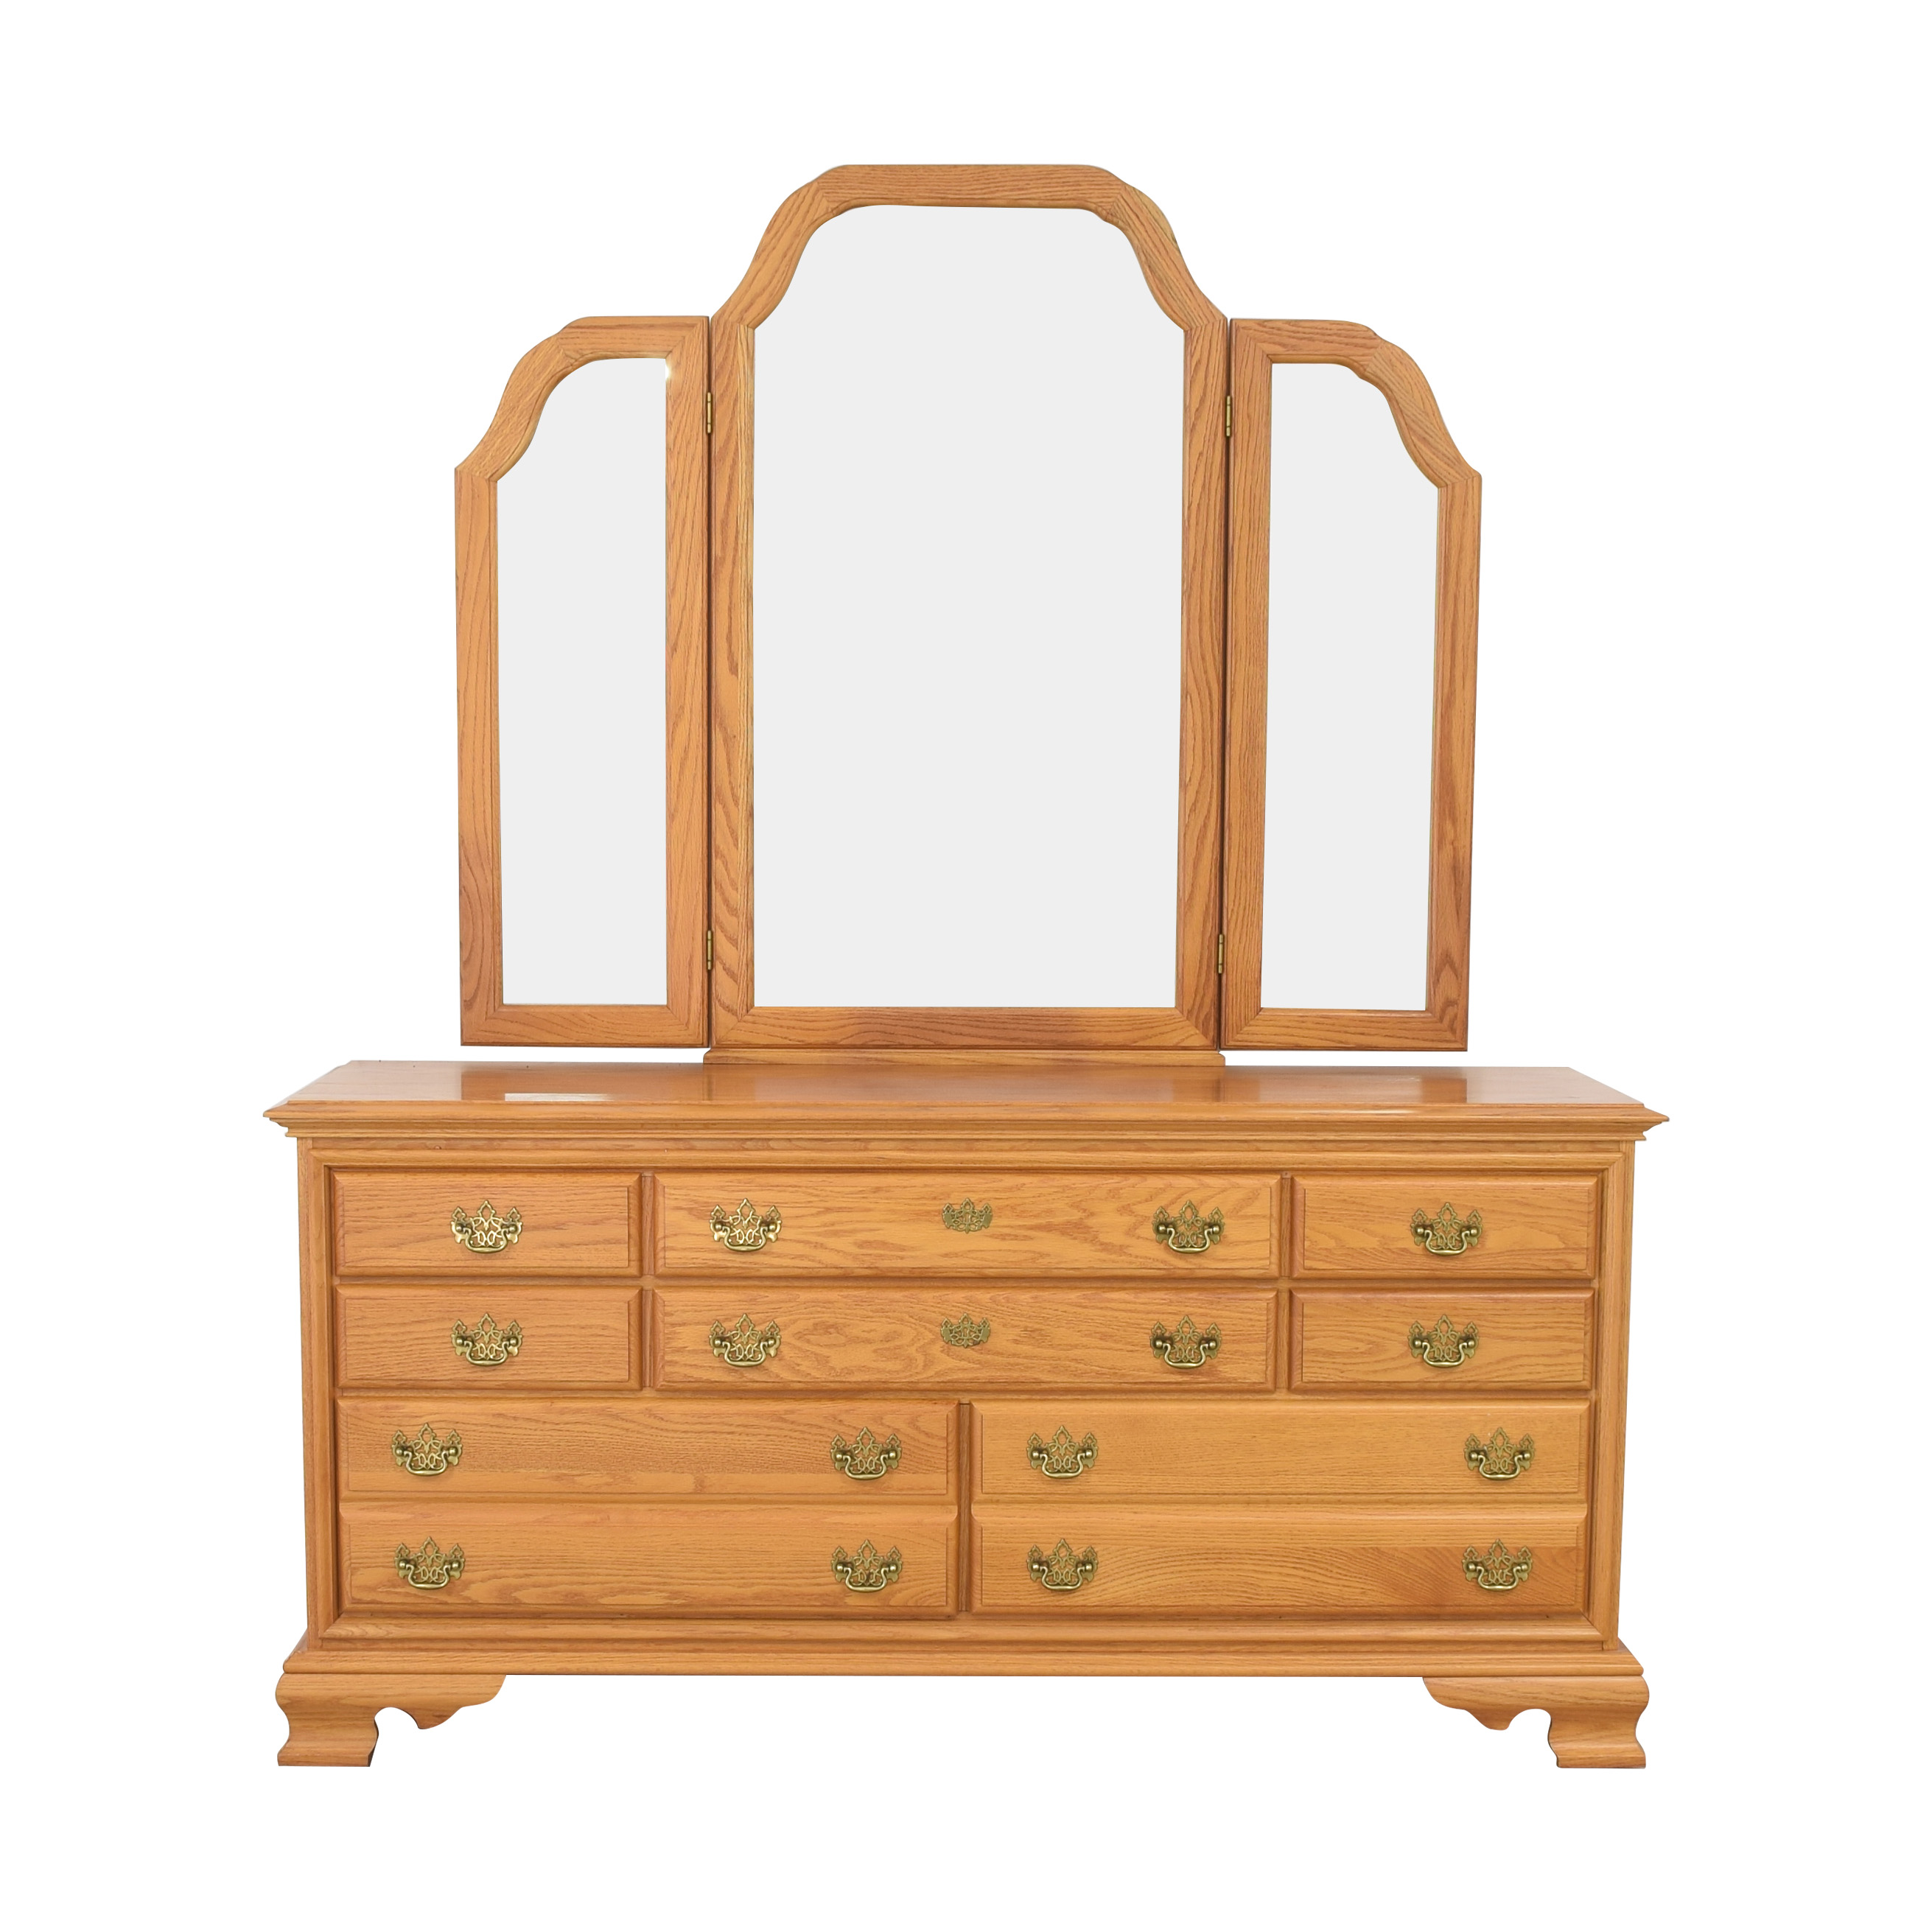 Masterfield Furniture Masterfield Furniture Eight Drawer Dresser with Mirror ct